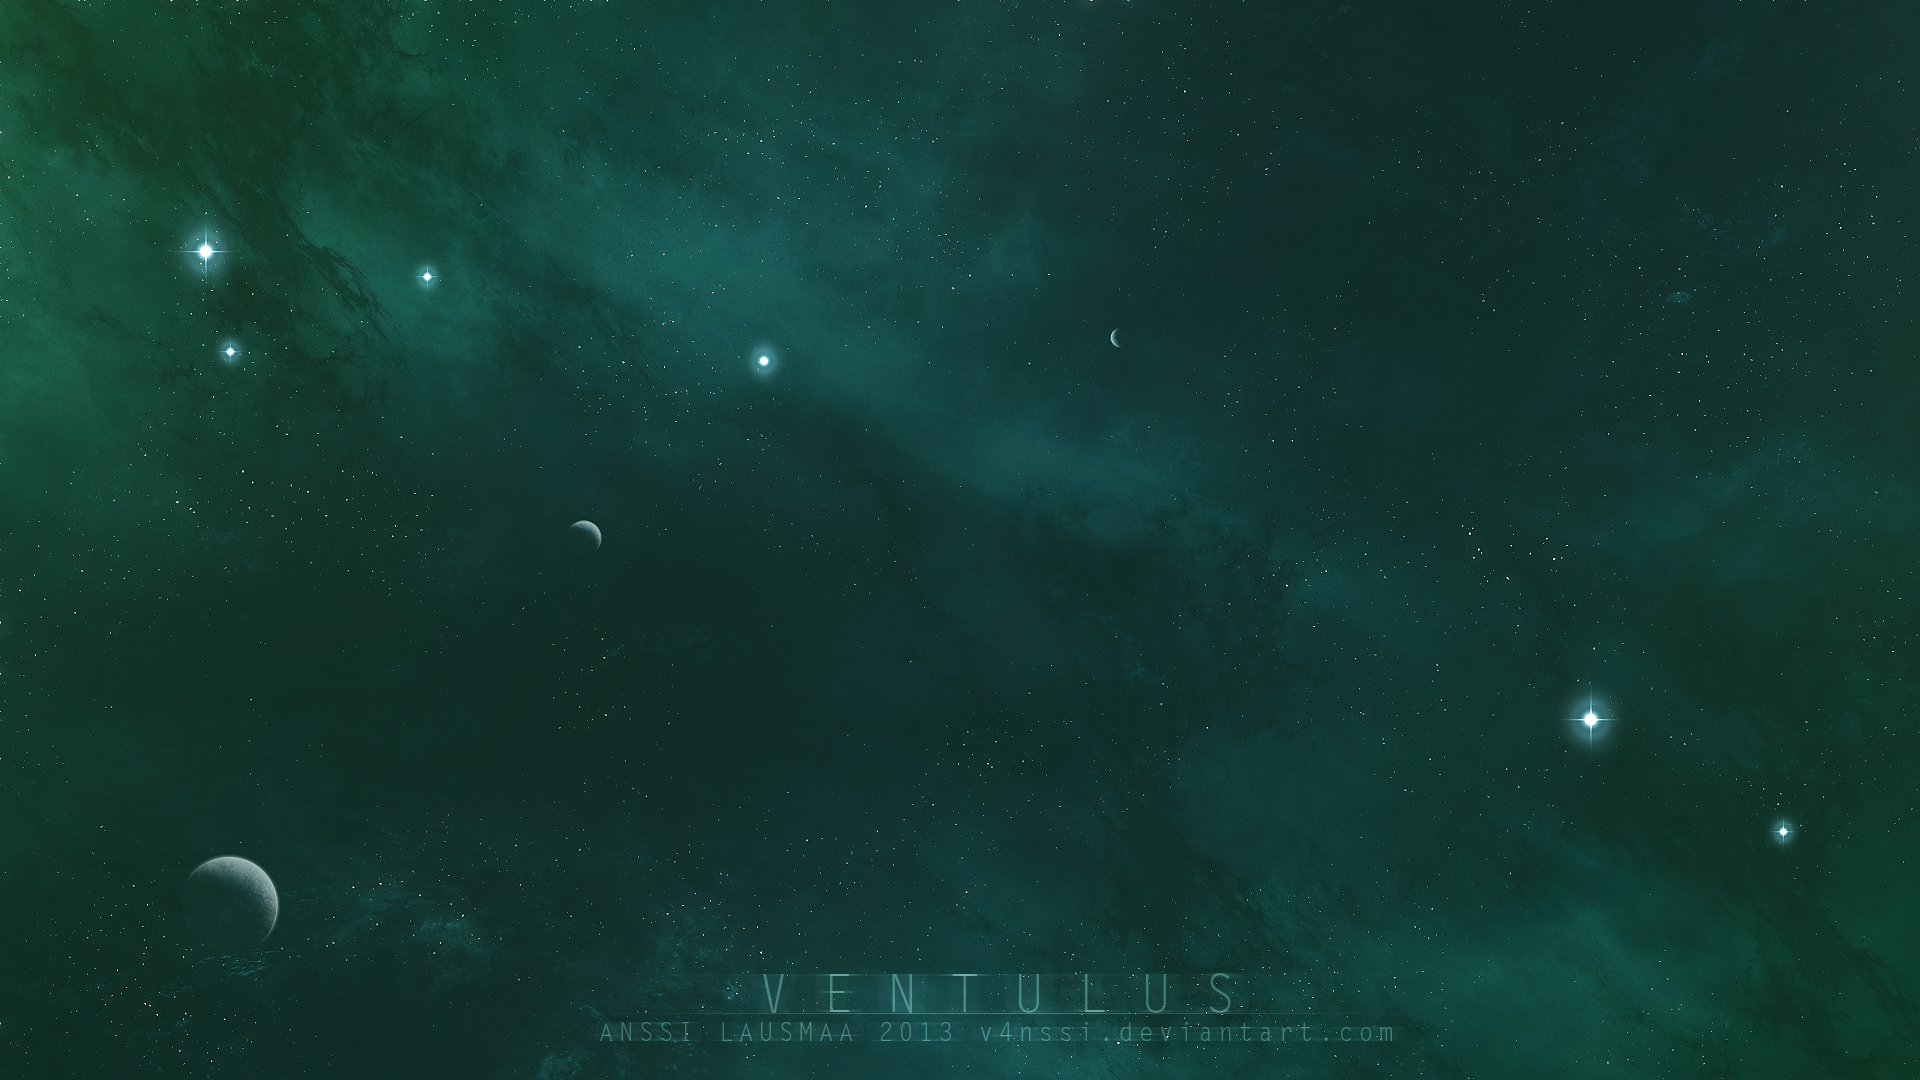 VENTULUS by v4nssi